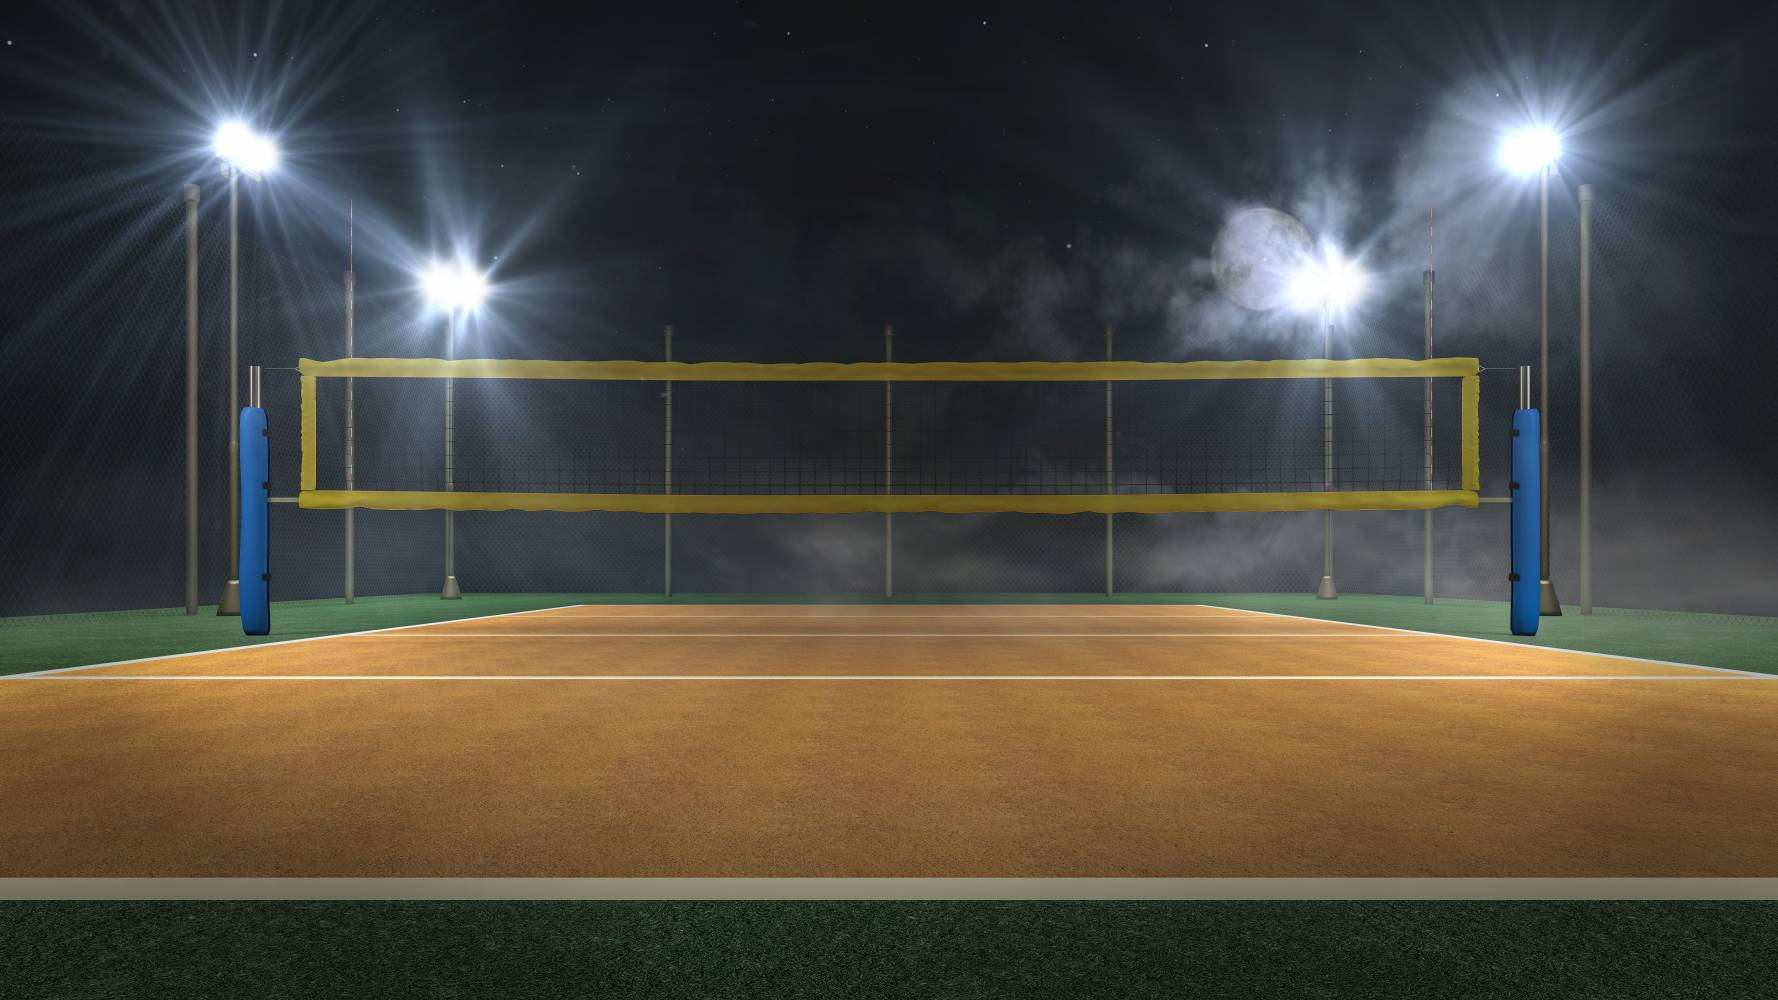 Image of Outdoor Sports Court with LED Ligthing